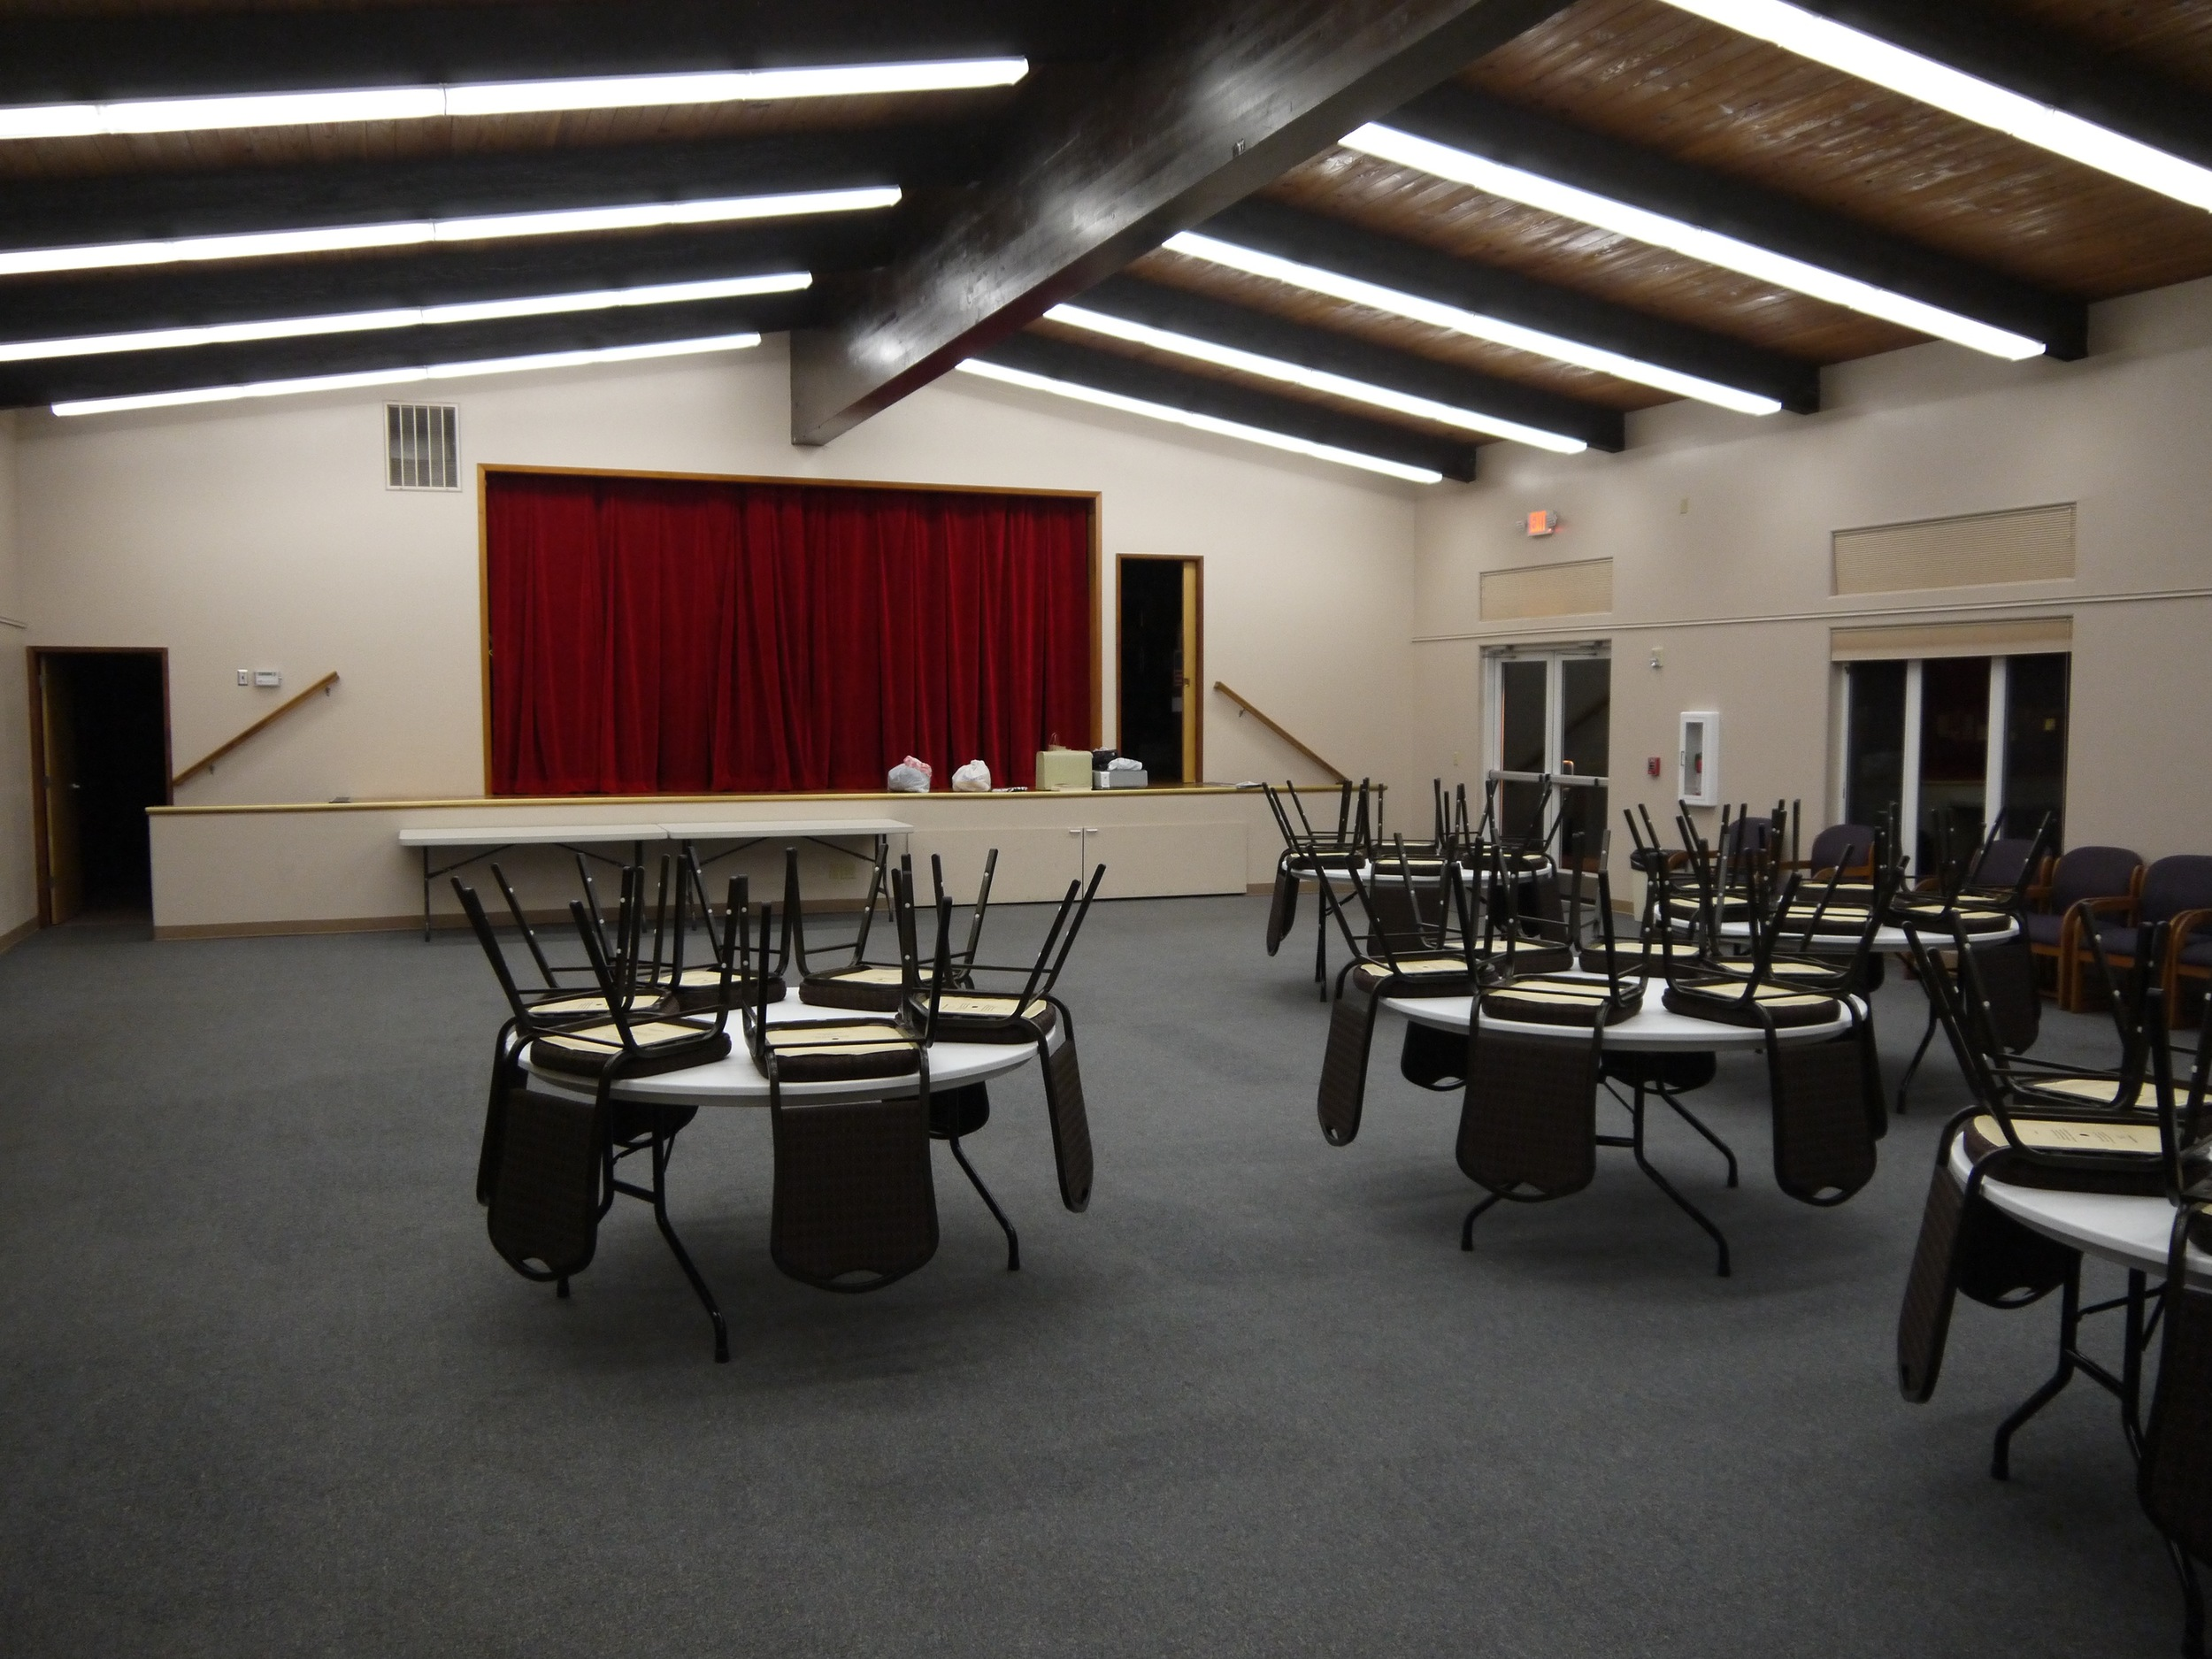 Fellowship Hall can serve as a Forum Meeting Room, Multi-purpose Room, or Auditorium (20'x 20'Stage)